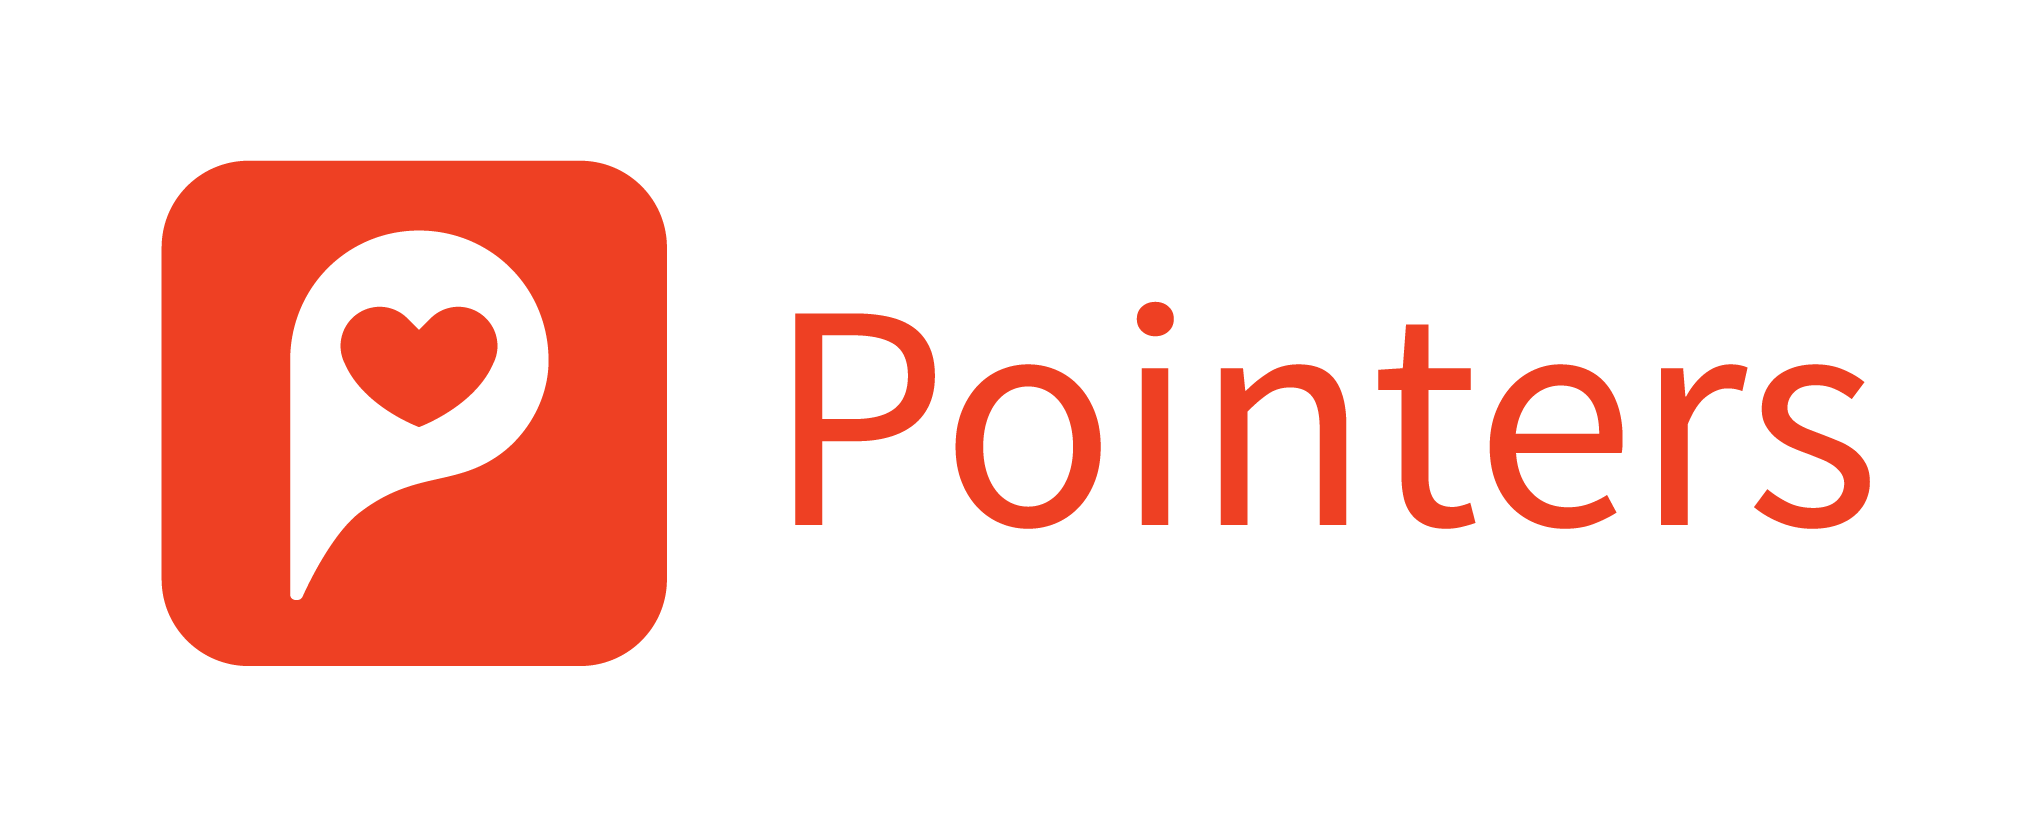 Pointers Logotype Monochrome Positive